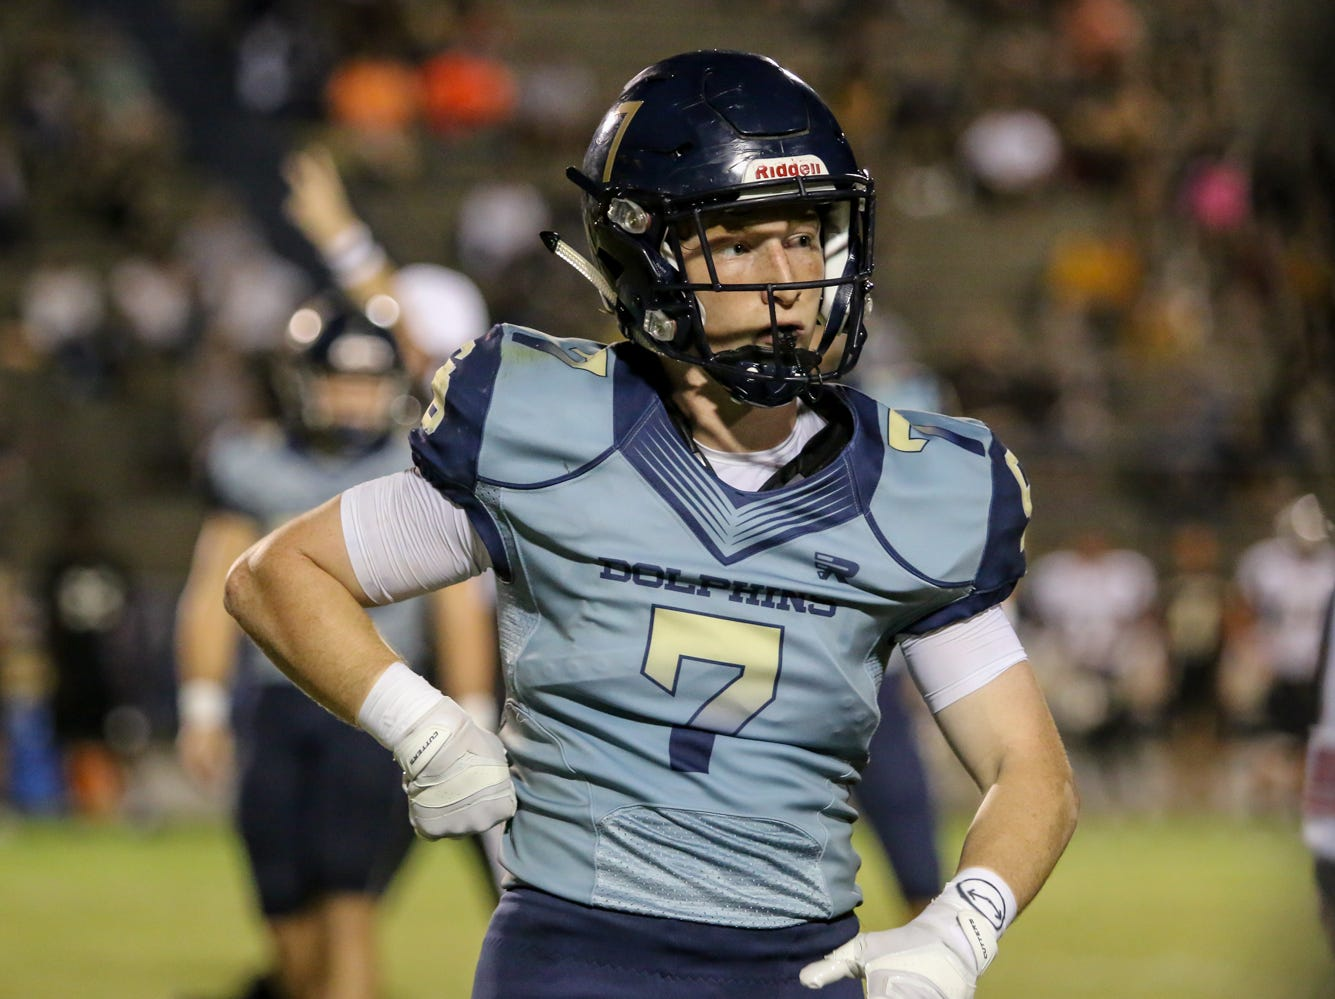 Gulf Breeze's Spencer Segal (7) waits for the next play to be called in from the sidelines against Milton in the District 2-6A game at Gulf Breeze High School on Friday.